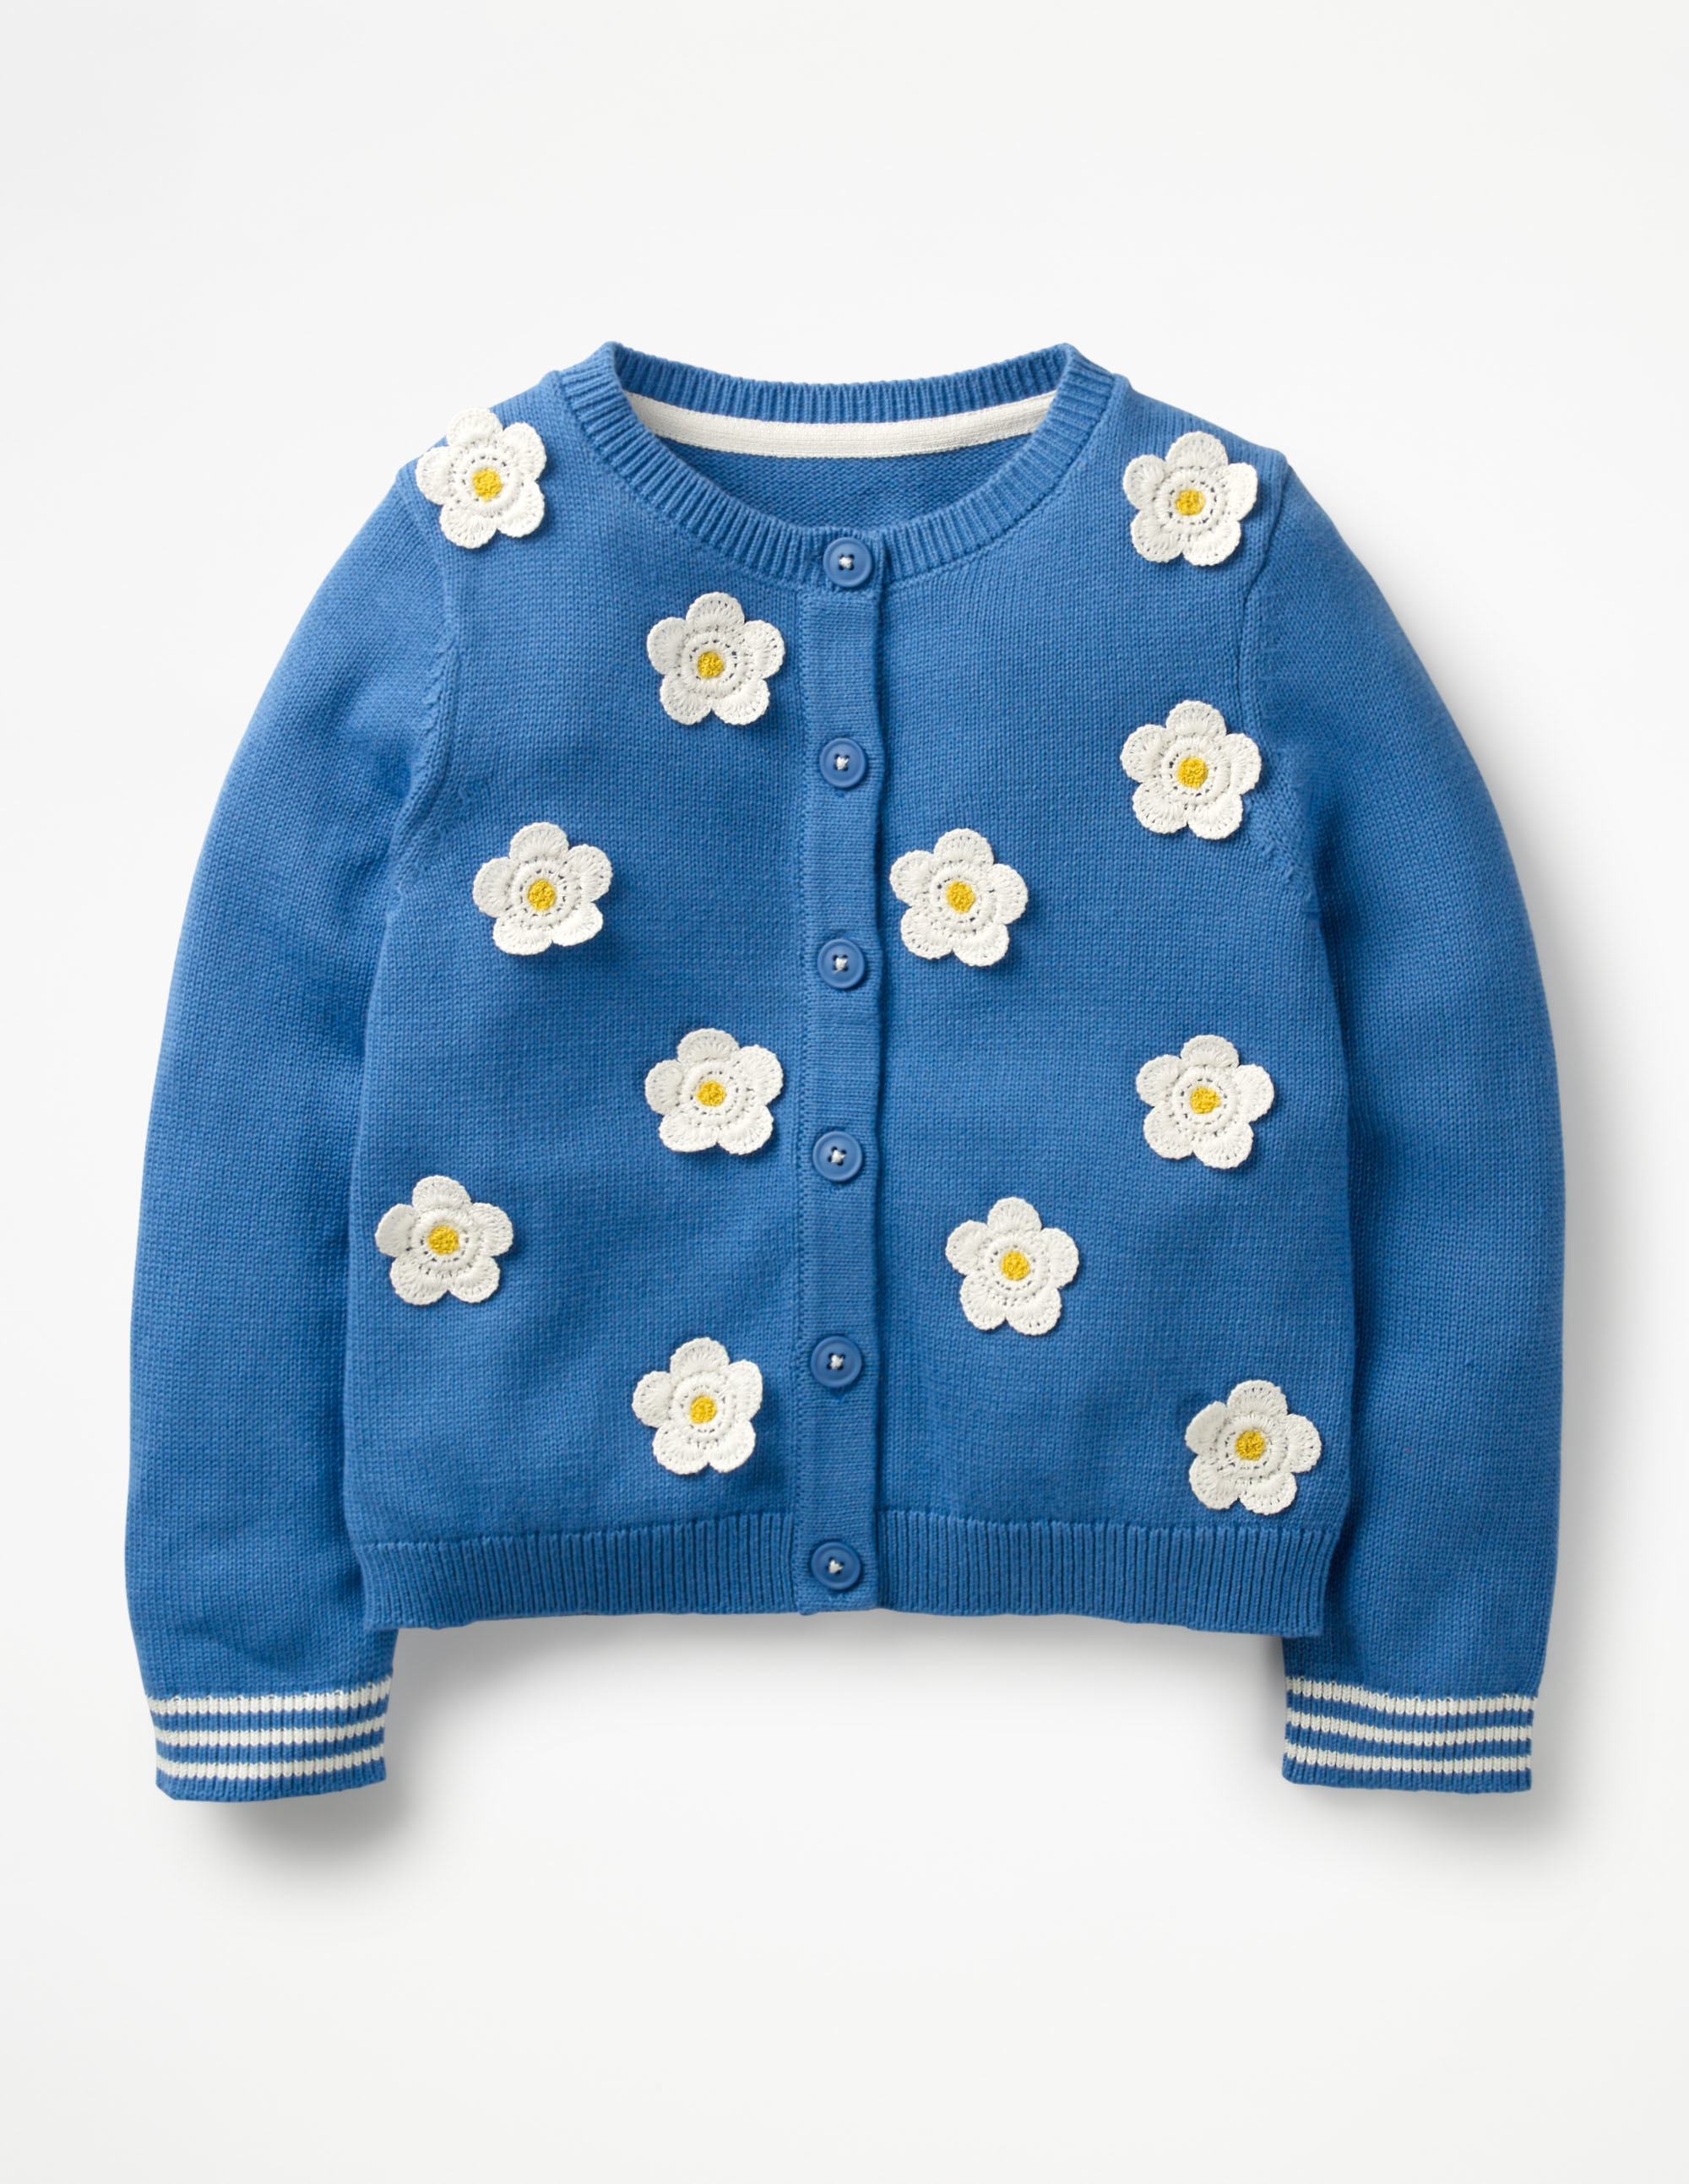 Daisy Floral Cardigan Girls Kids